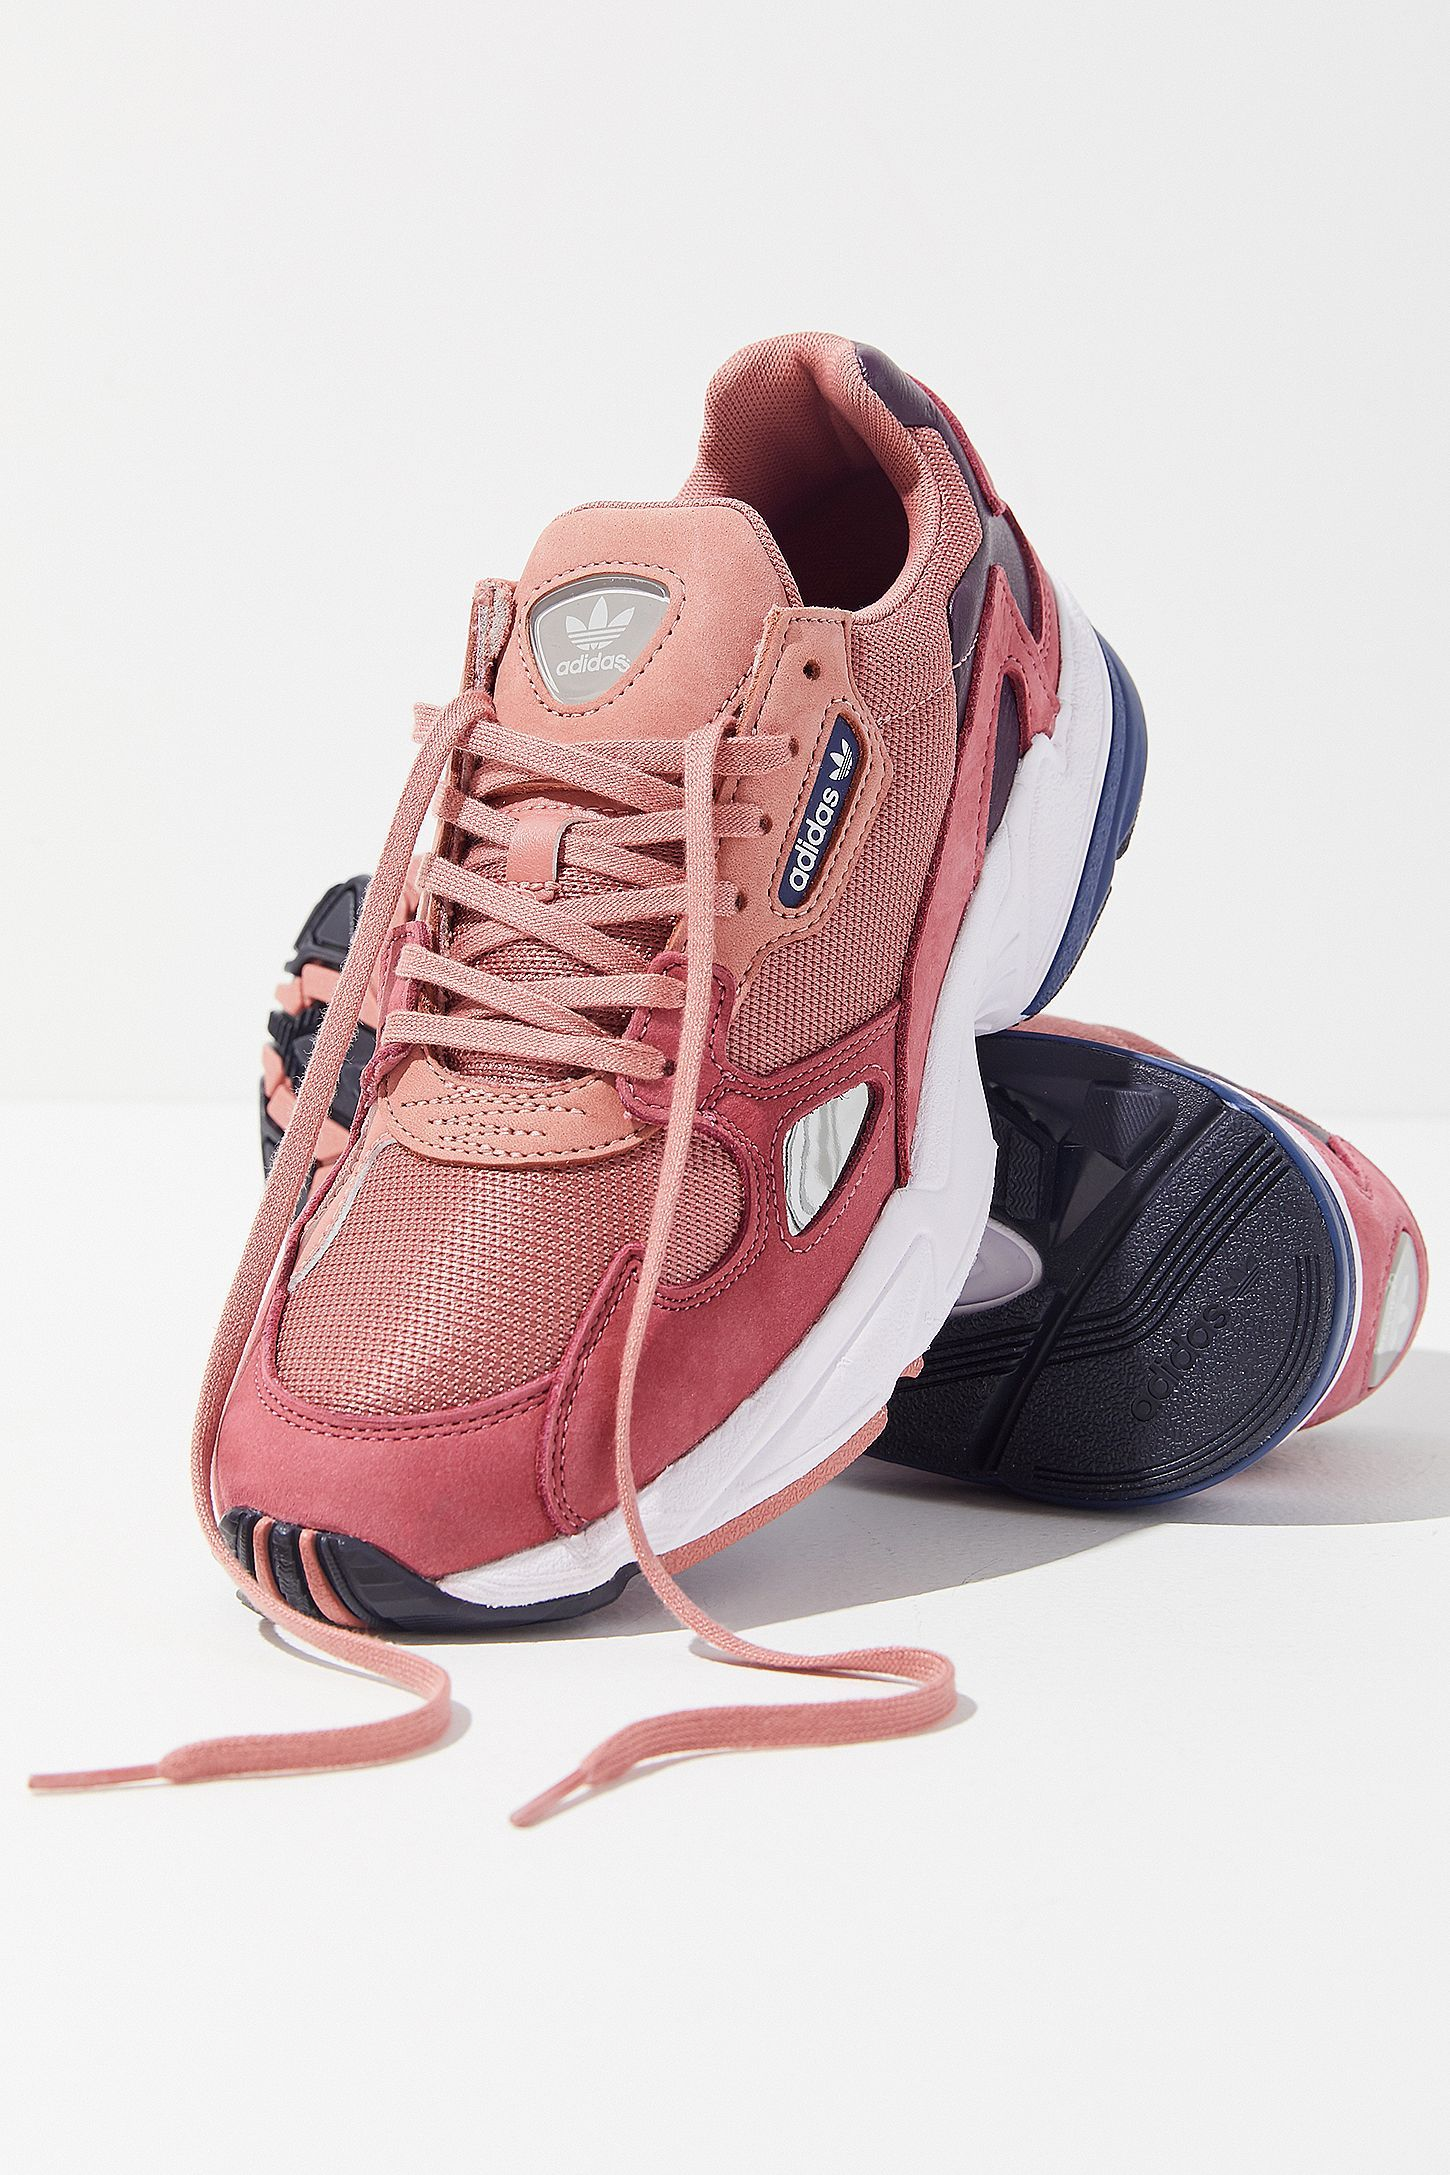 adidas Originals Falcon Raw Pink Trainers | Adidas in 2019